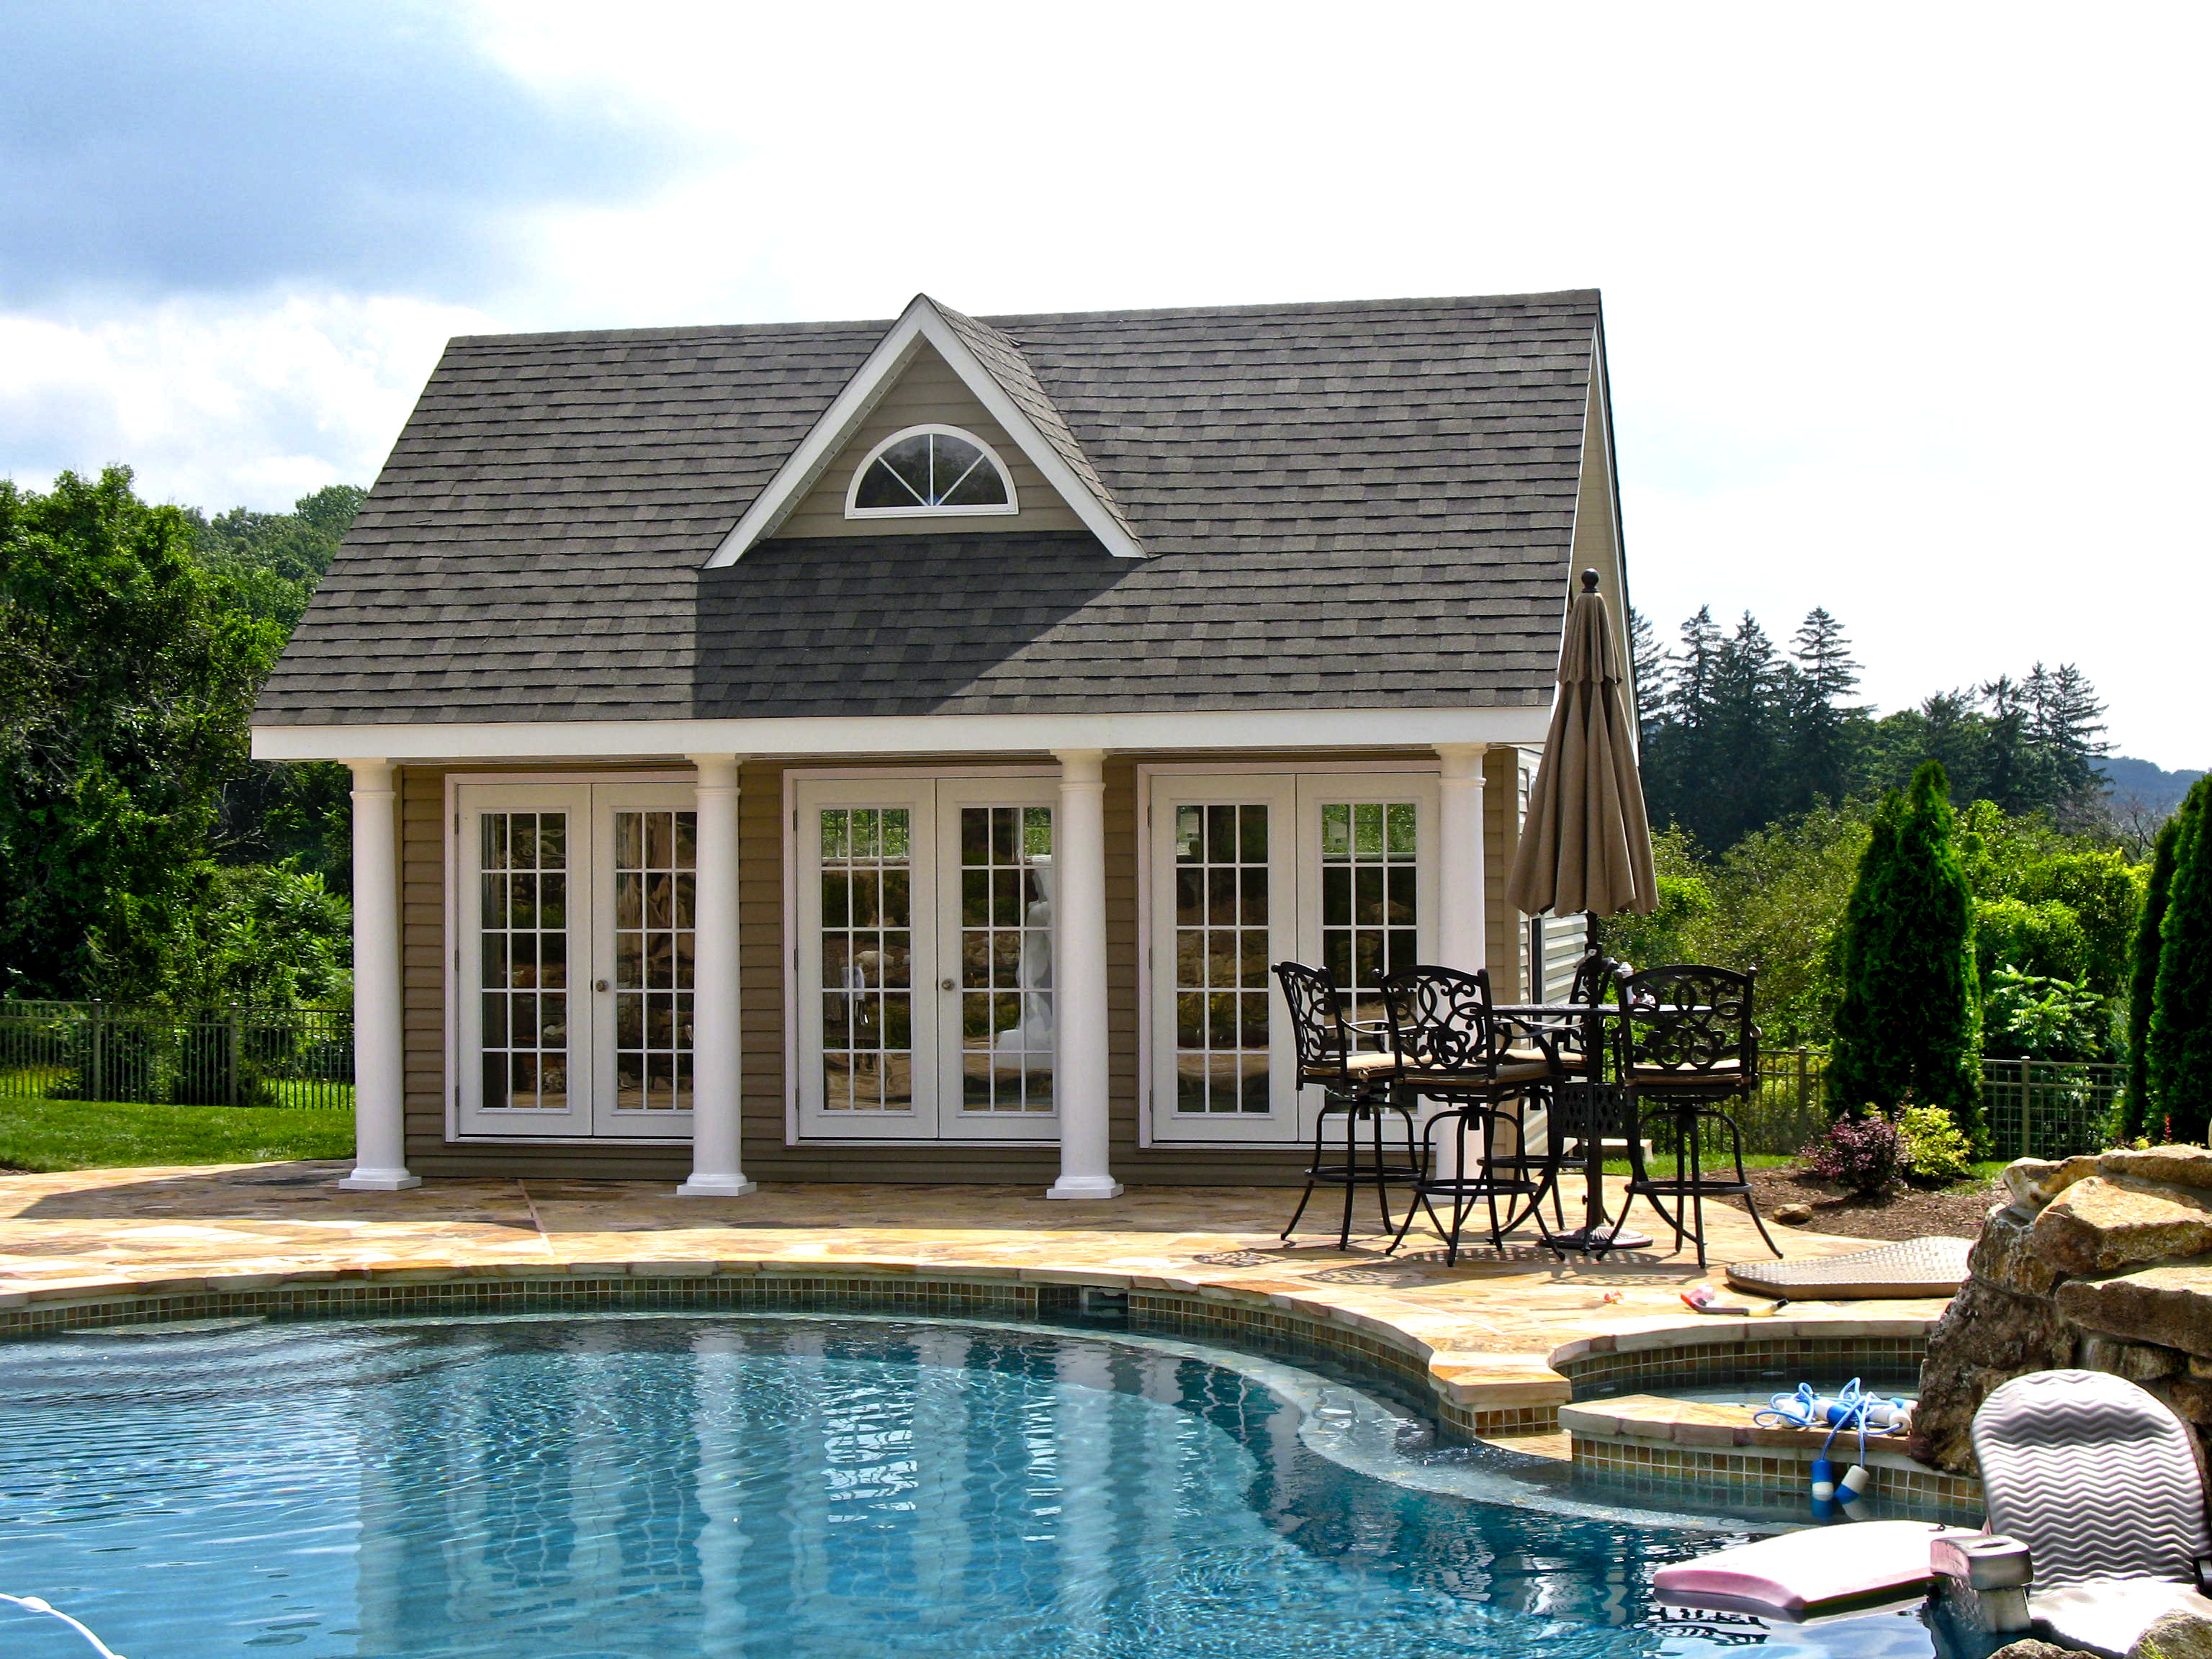 Heritage pool houses photos homestead structures for Pool house plan